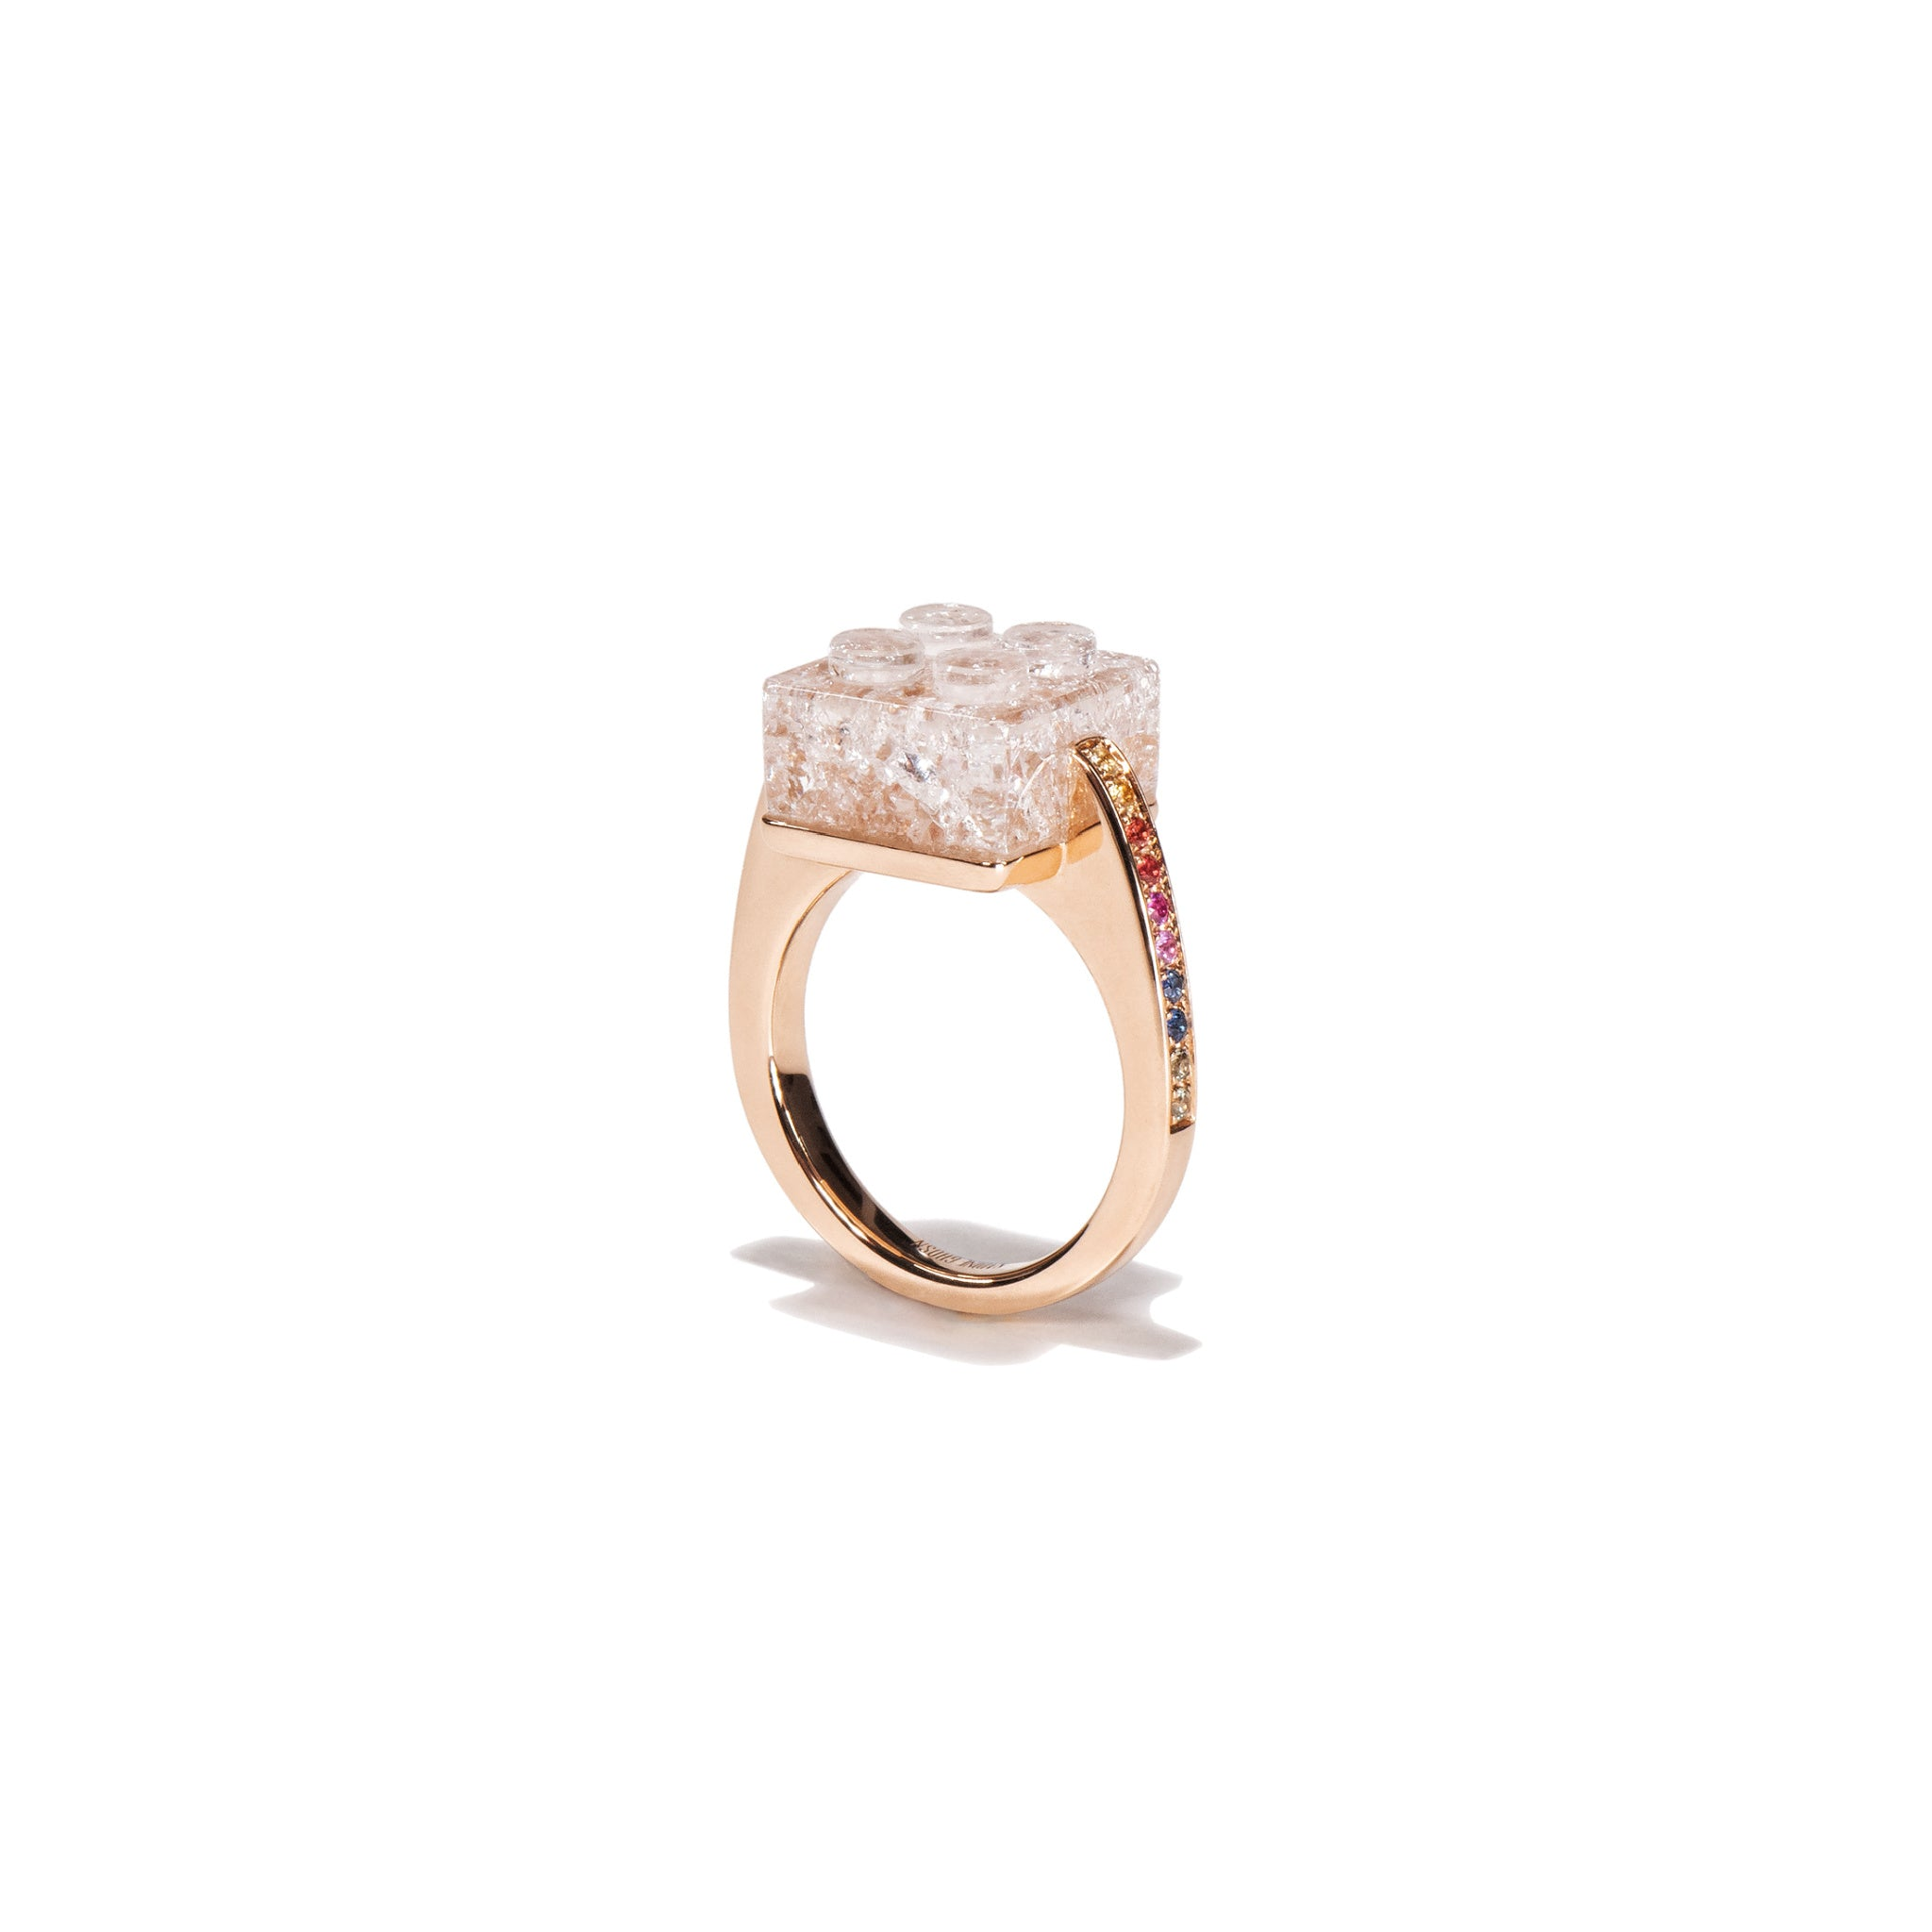 The Bare Block Ring - White Quartz